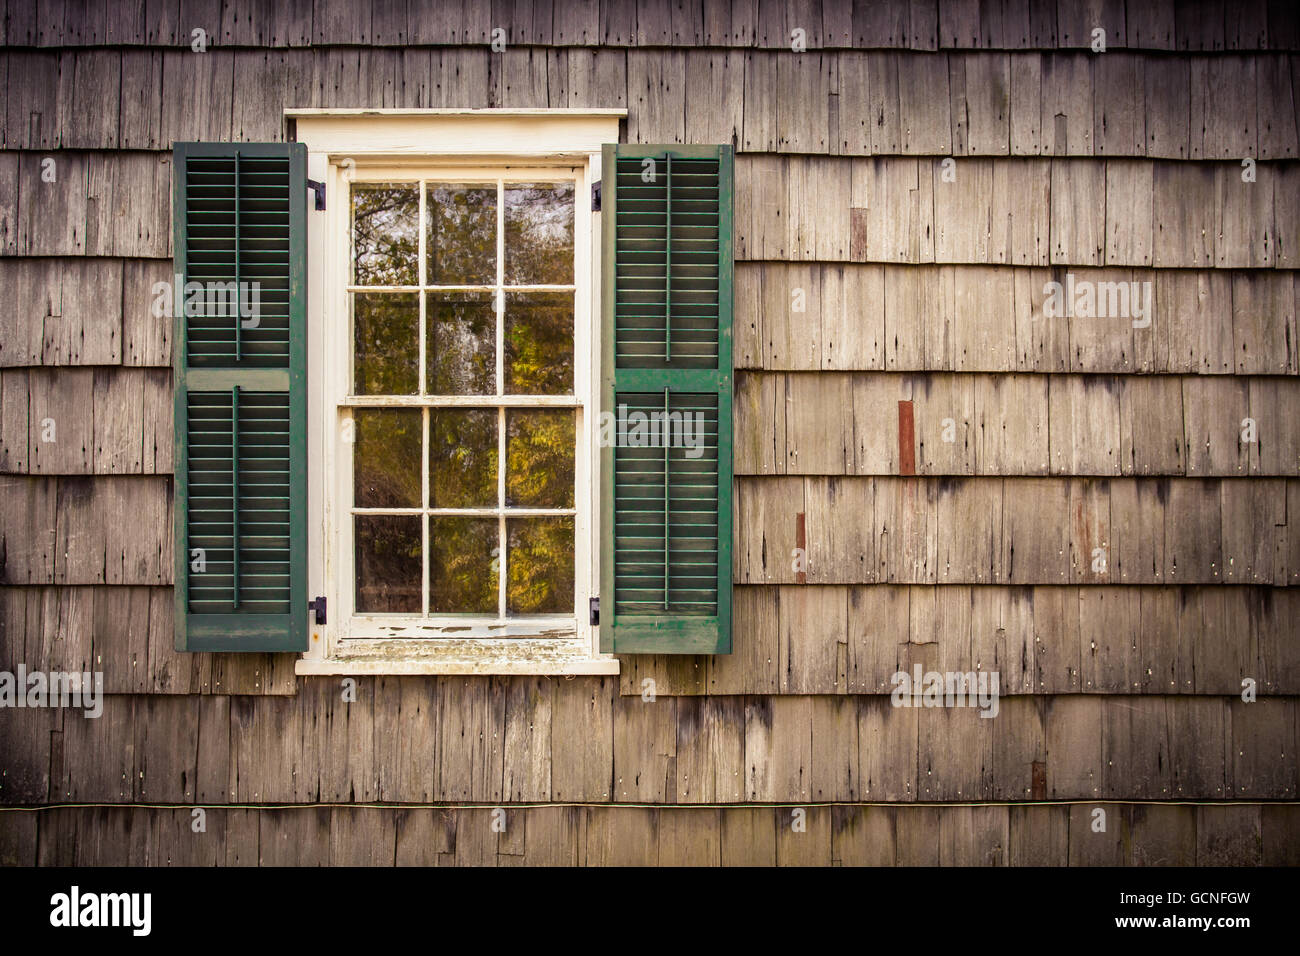 details on home exterior with window, shutters and wooden cedar ...